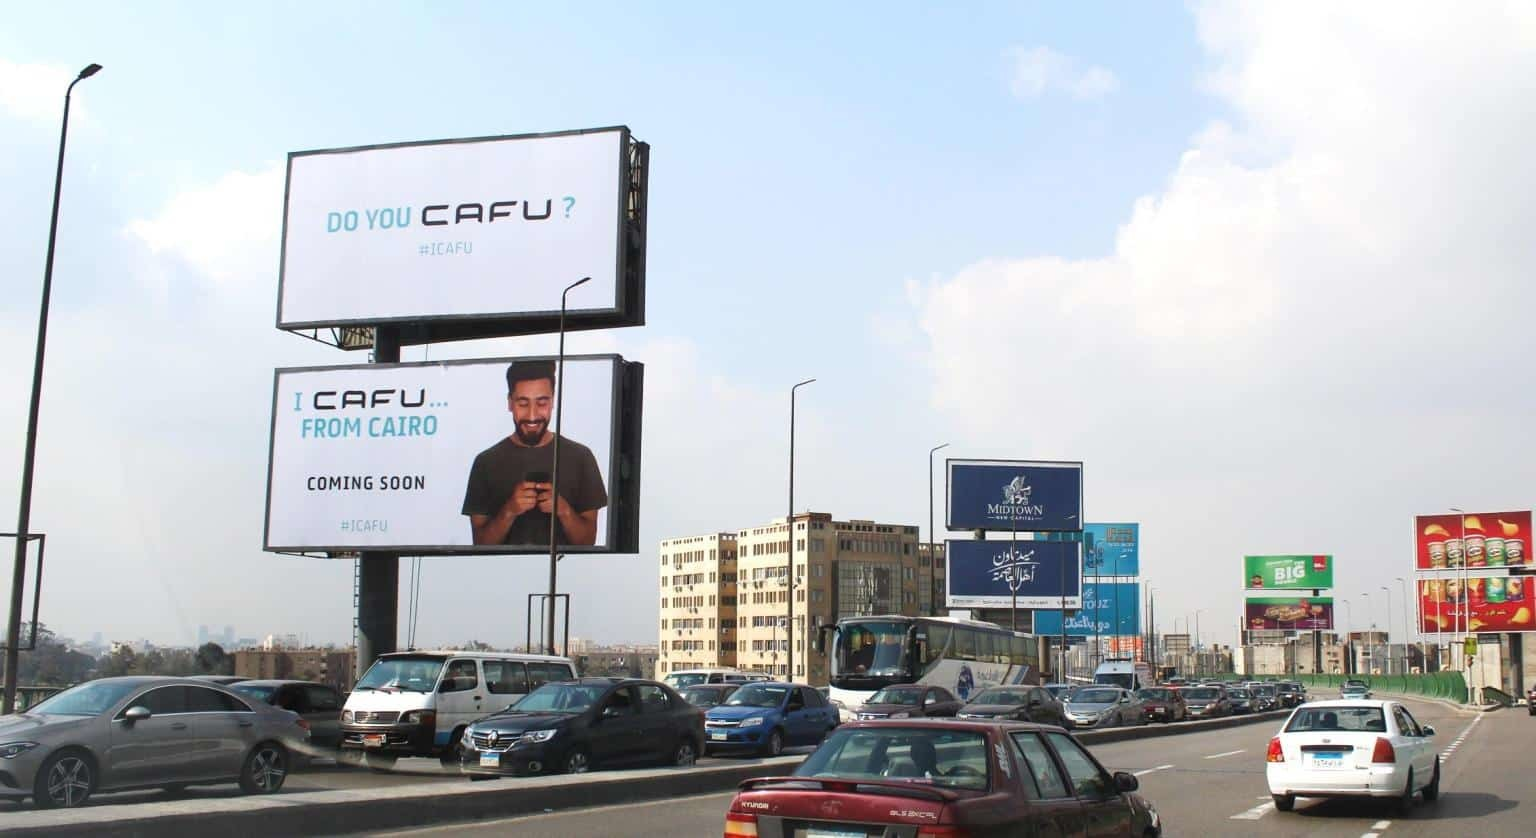 Cafu Billboard in Egypt